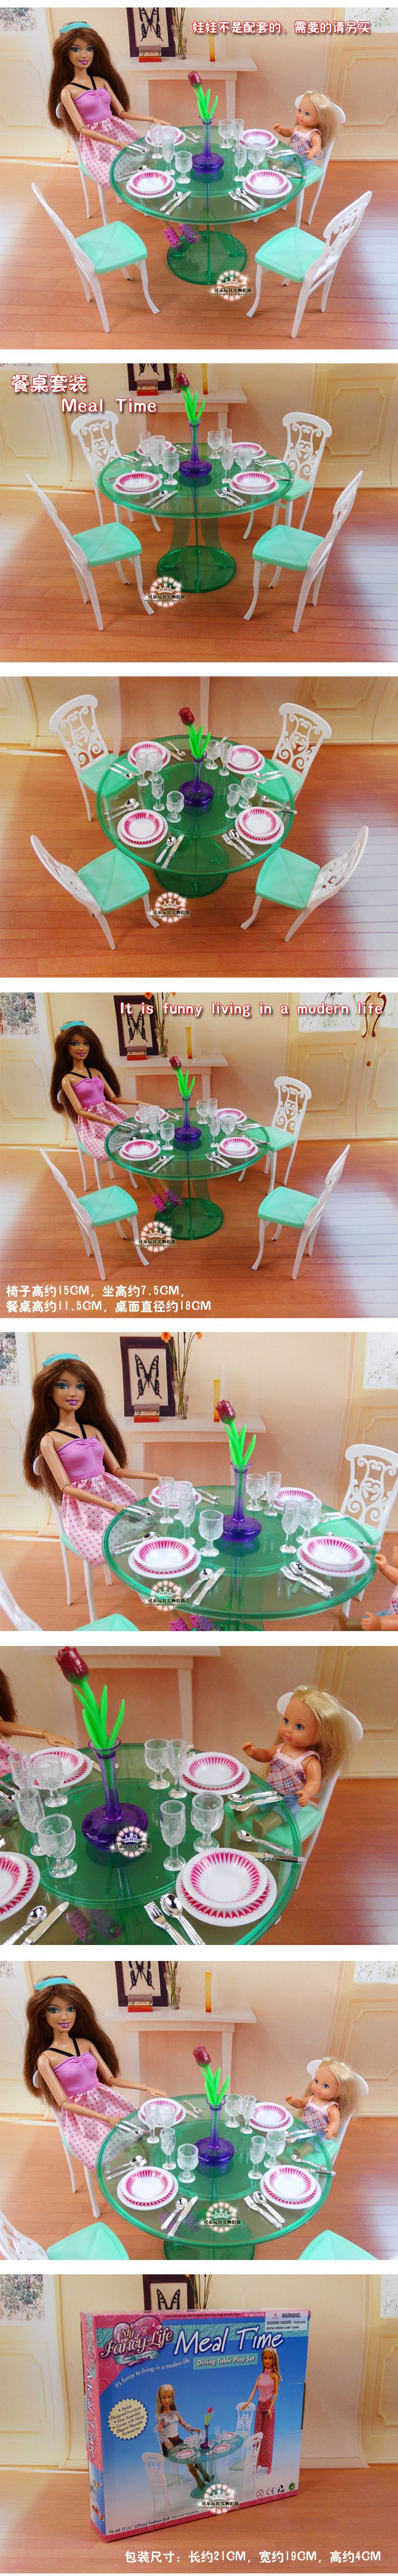 Free transport  youngsters play home women toys birthday present dinner desk set equipment for barbie doll,doll dinner desk